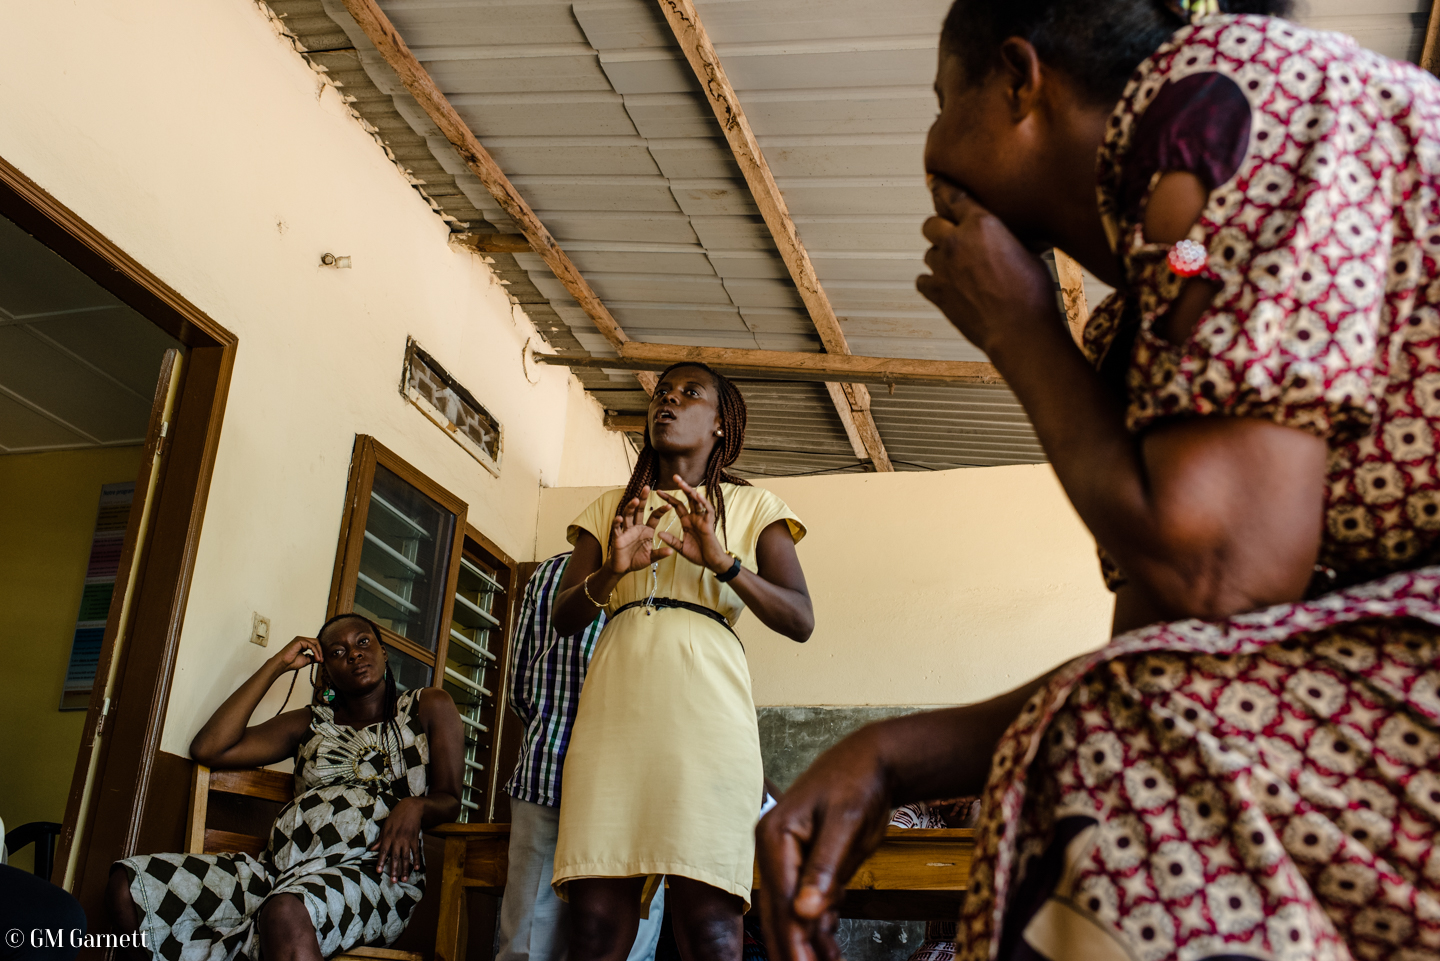 IADES provide workshops on business practice, gender equality and domestic violence to strengthen the community of women who receive 90% of IADES' loans.